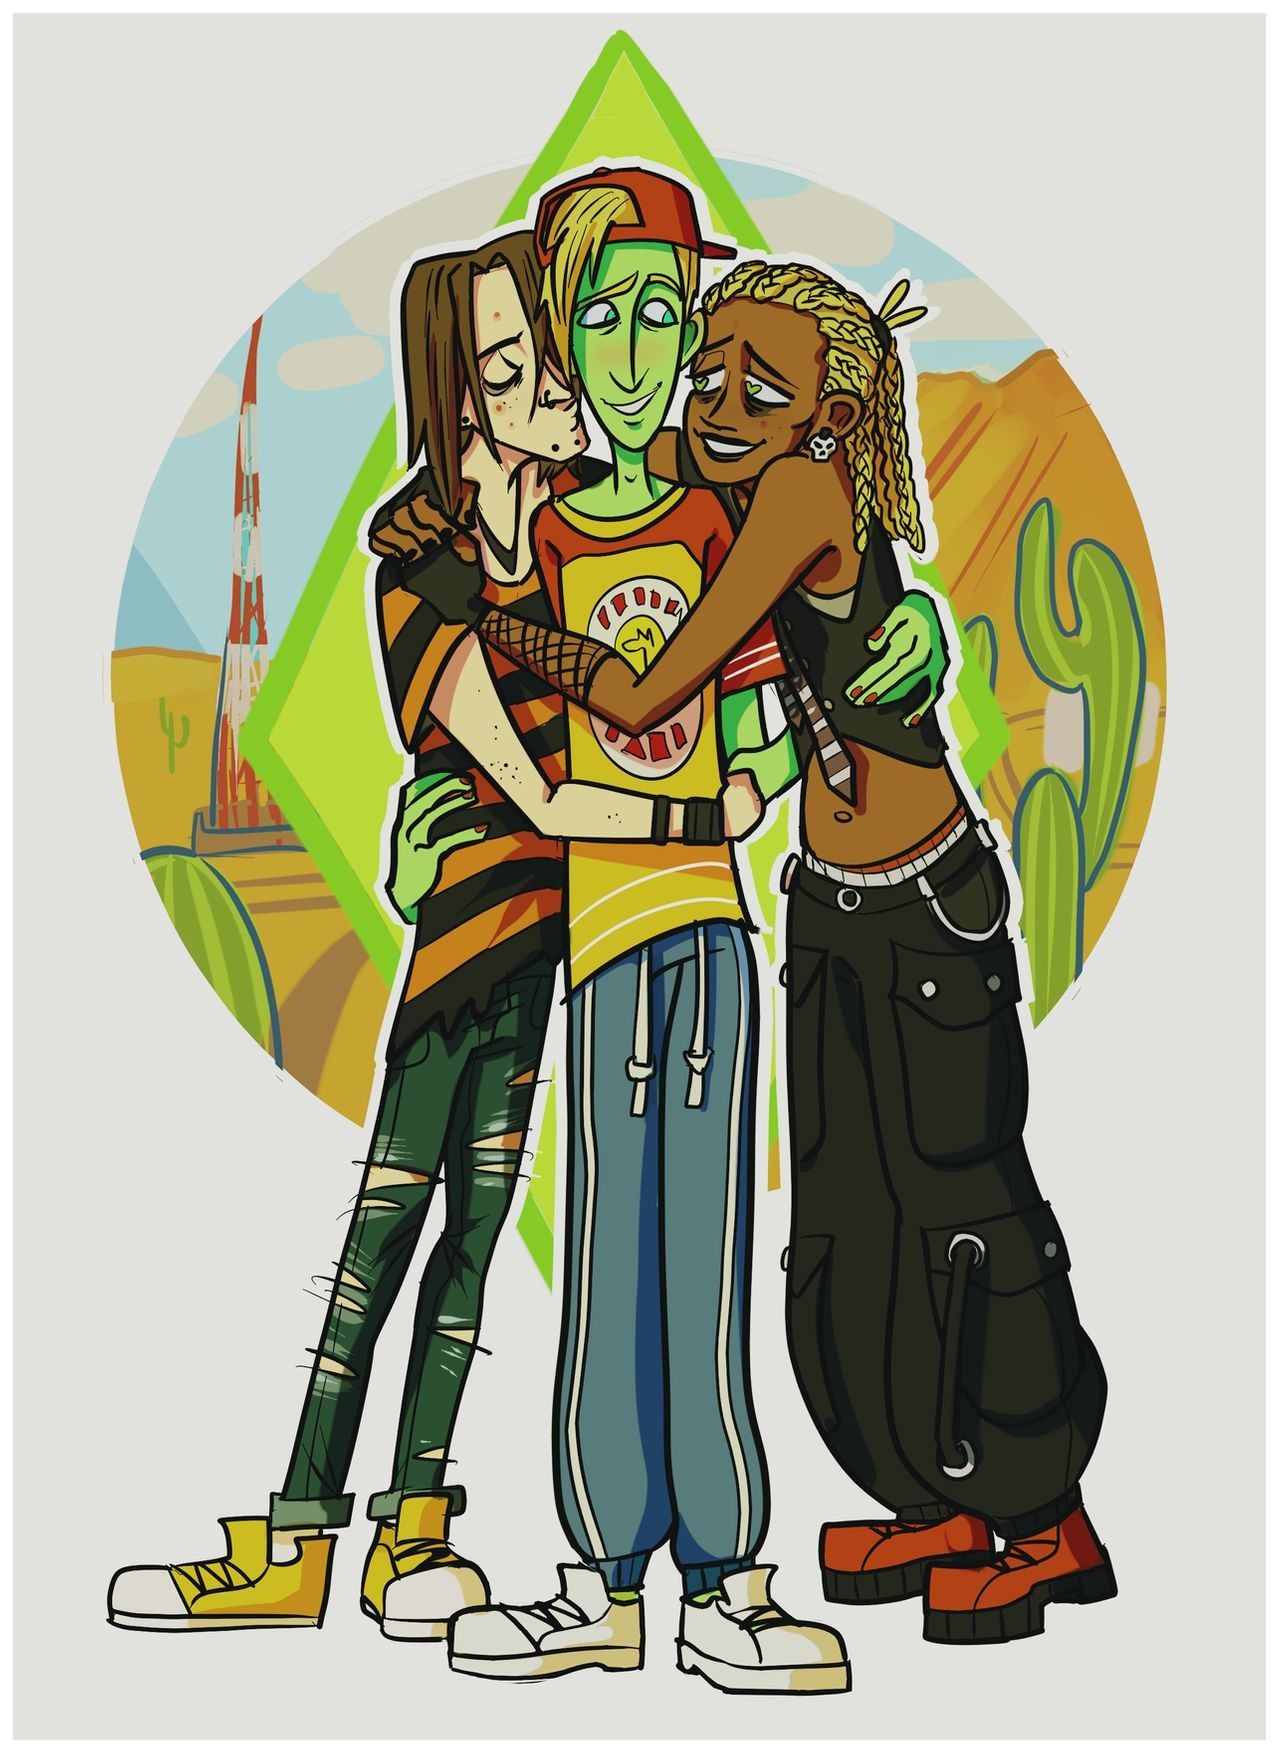 johnny/ripp/ophelia by spacemerperson on DeviantArt in